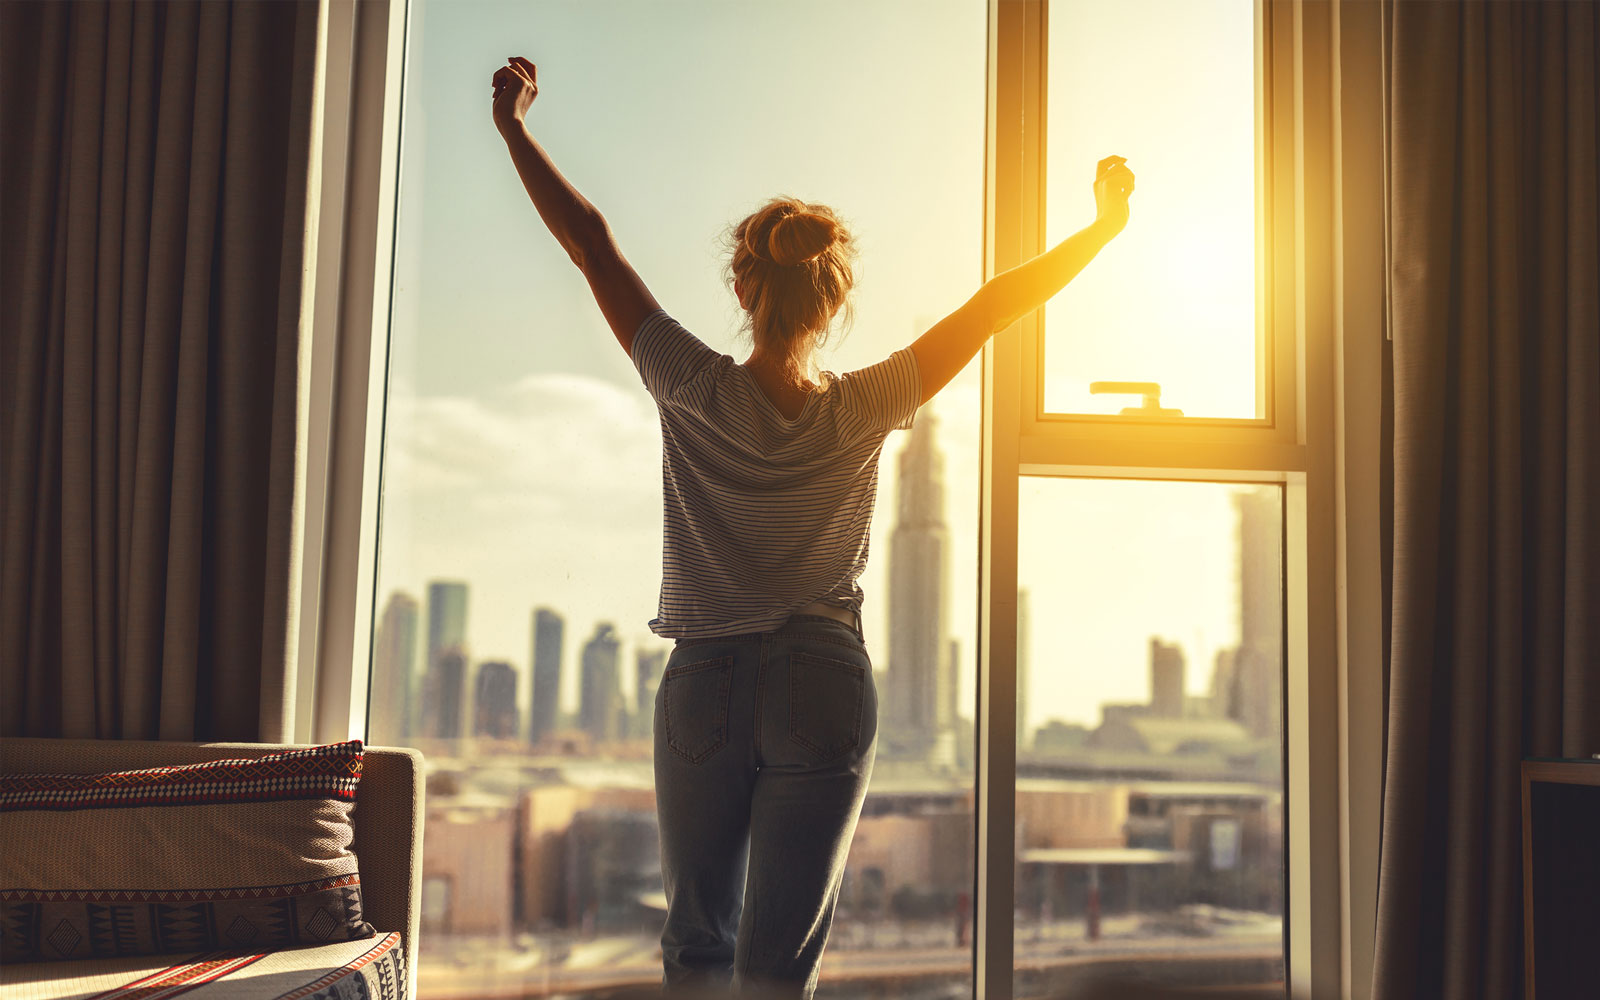 People Who Wake Up at This Time Are Happier, More Productive, and Make More Money